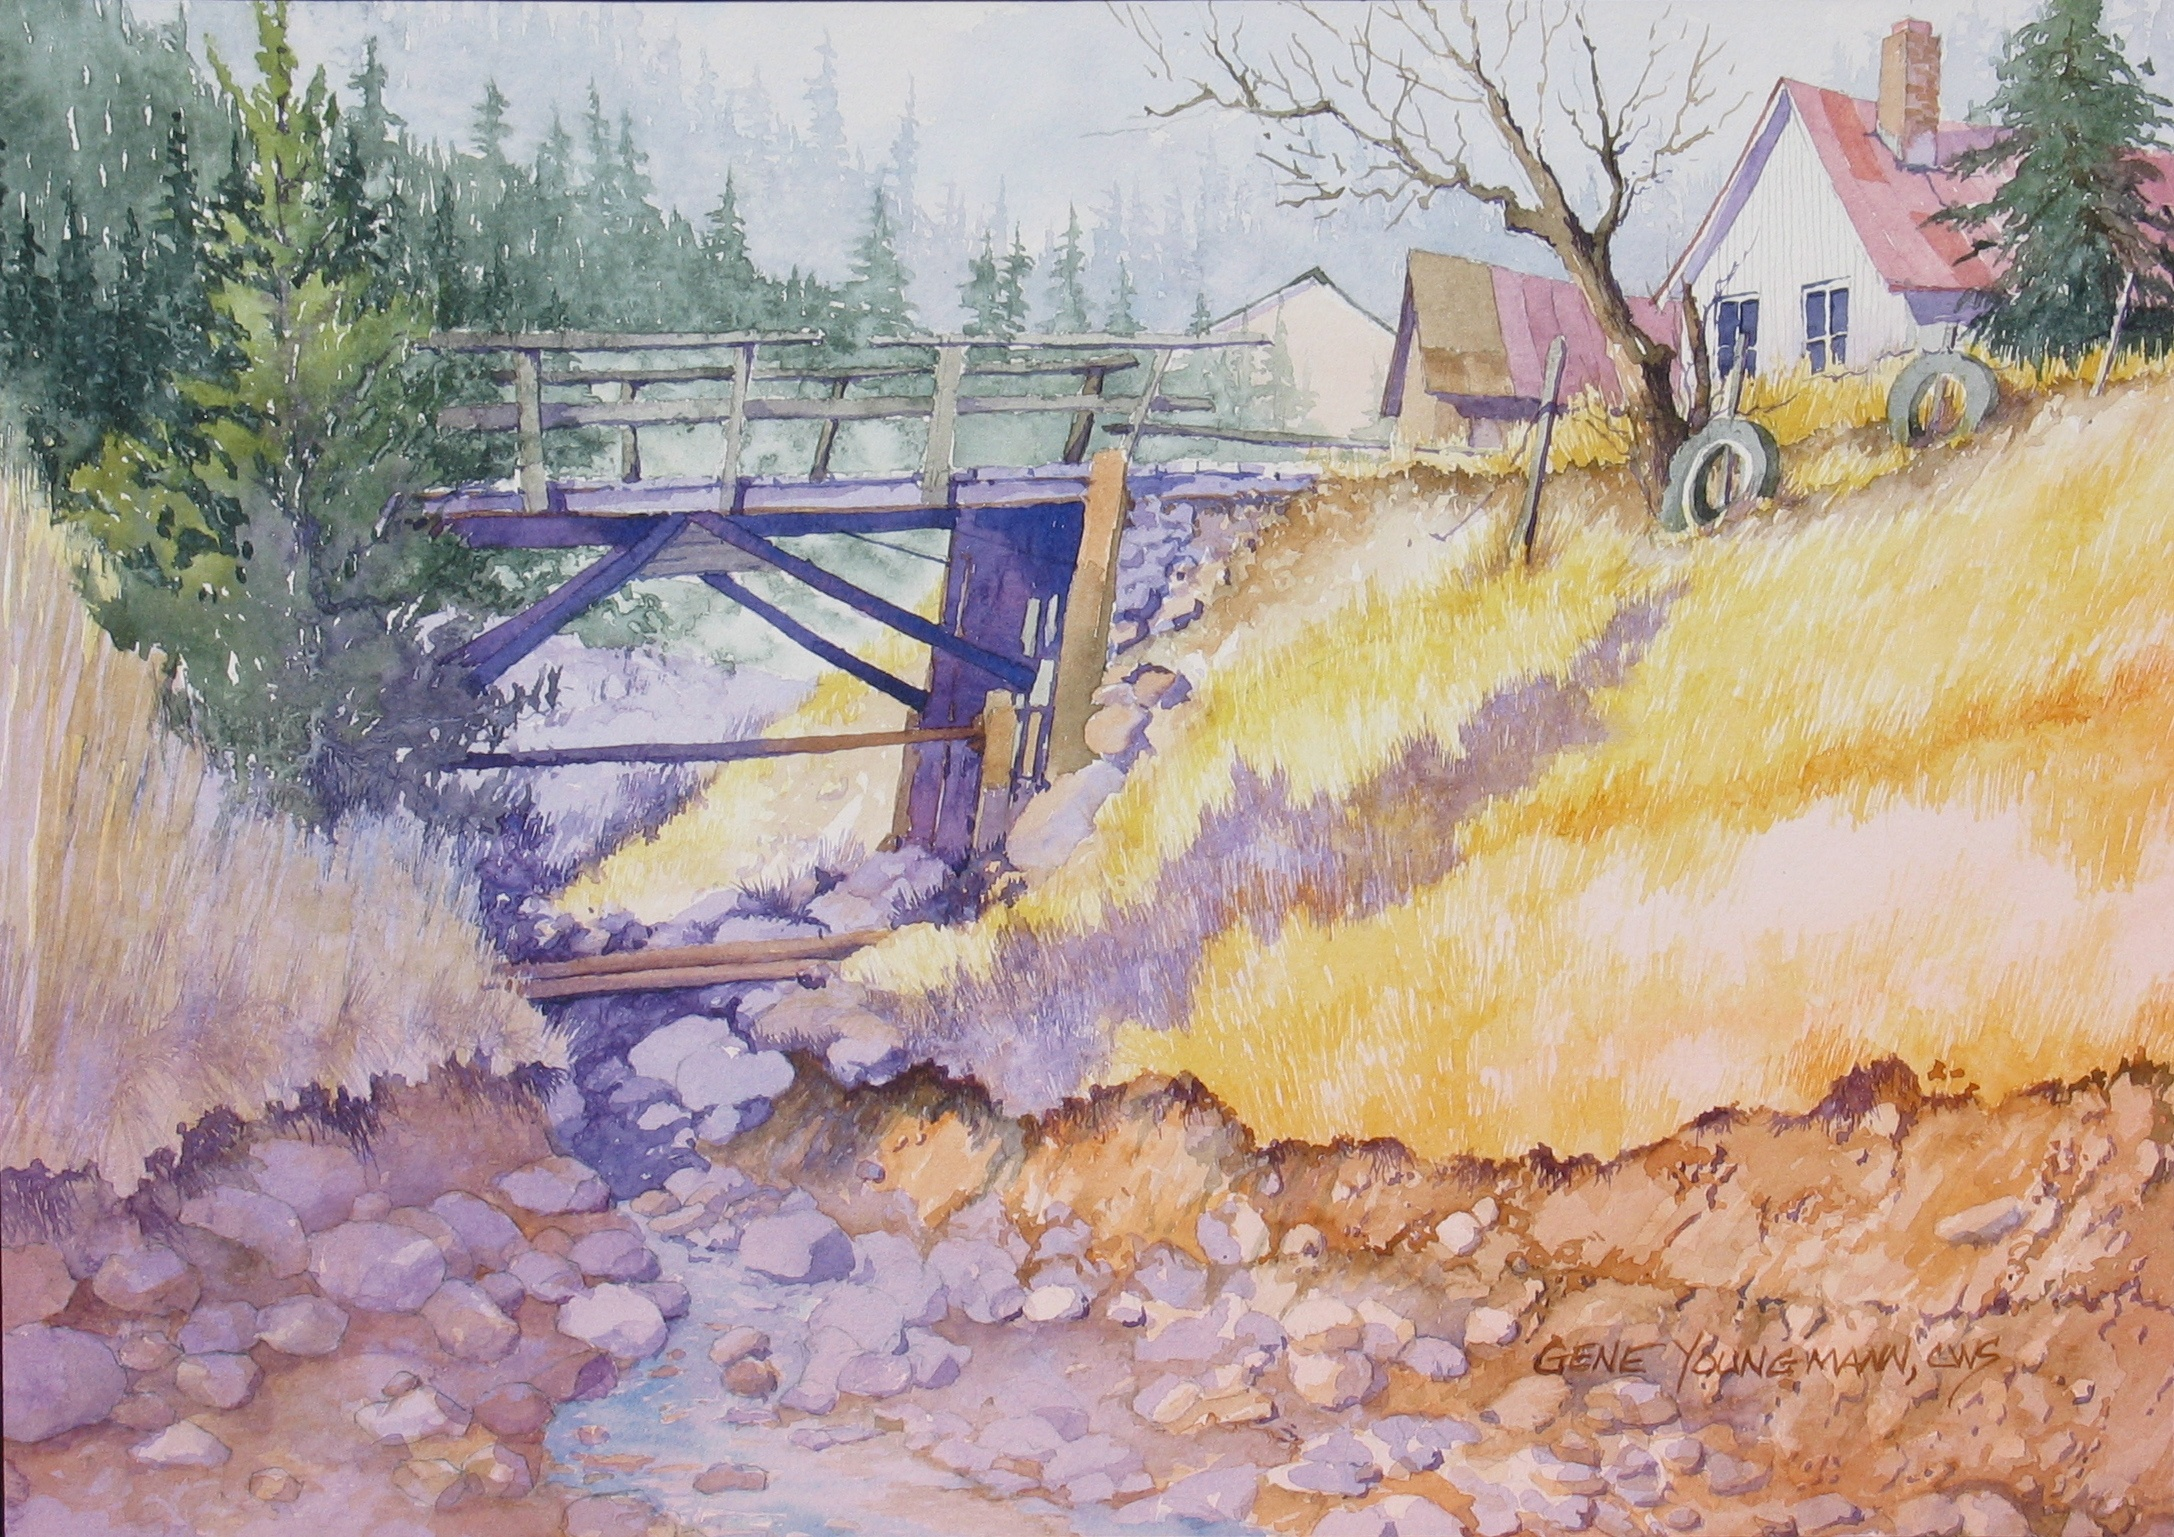 Painting #23 Gregory Gulch Bridge